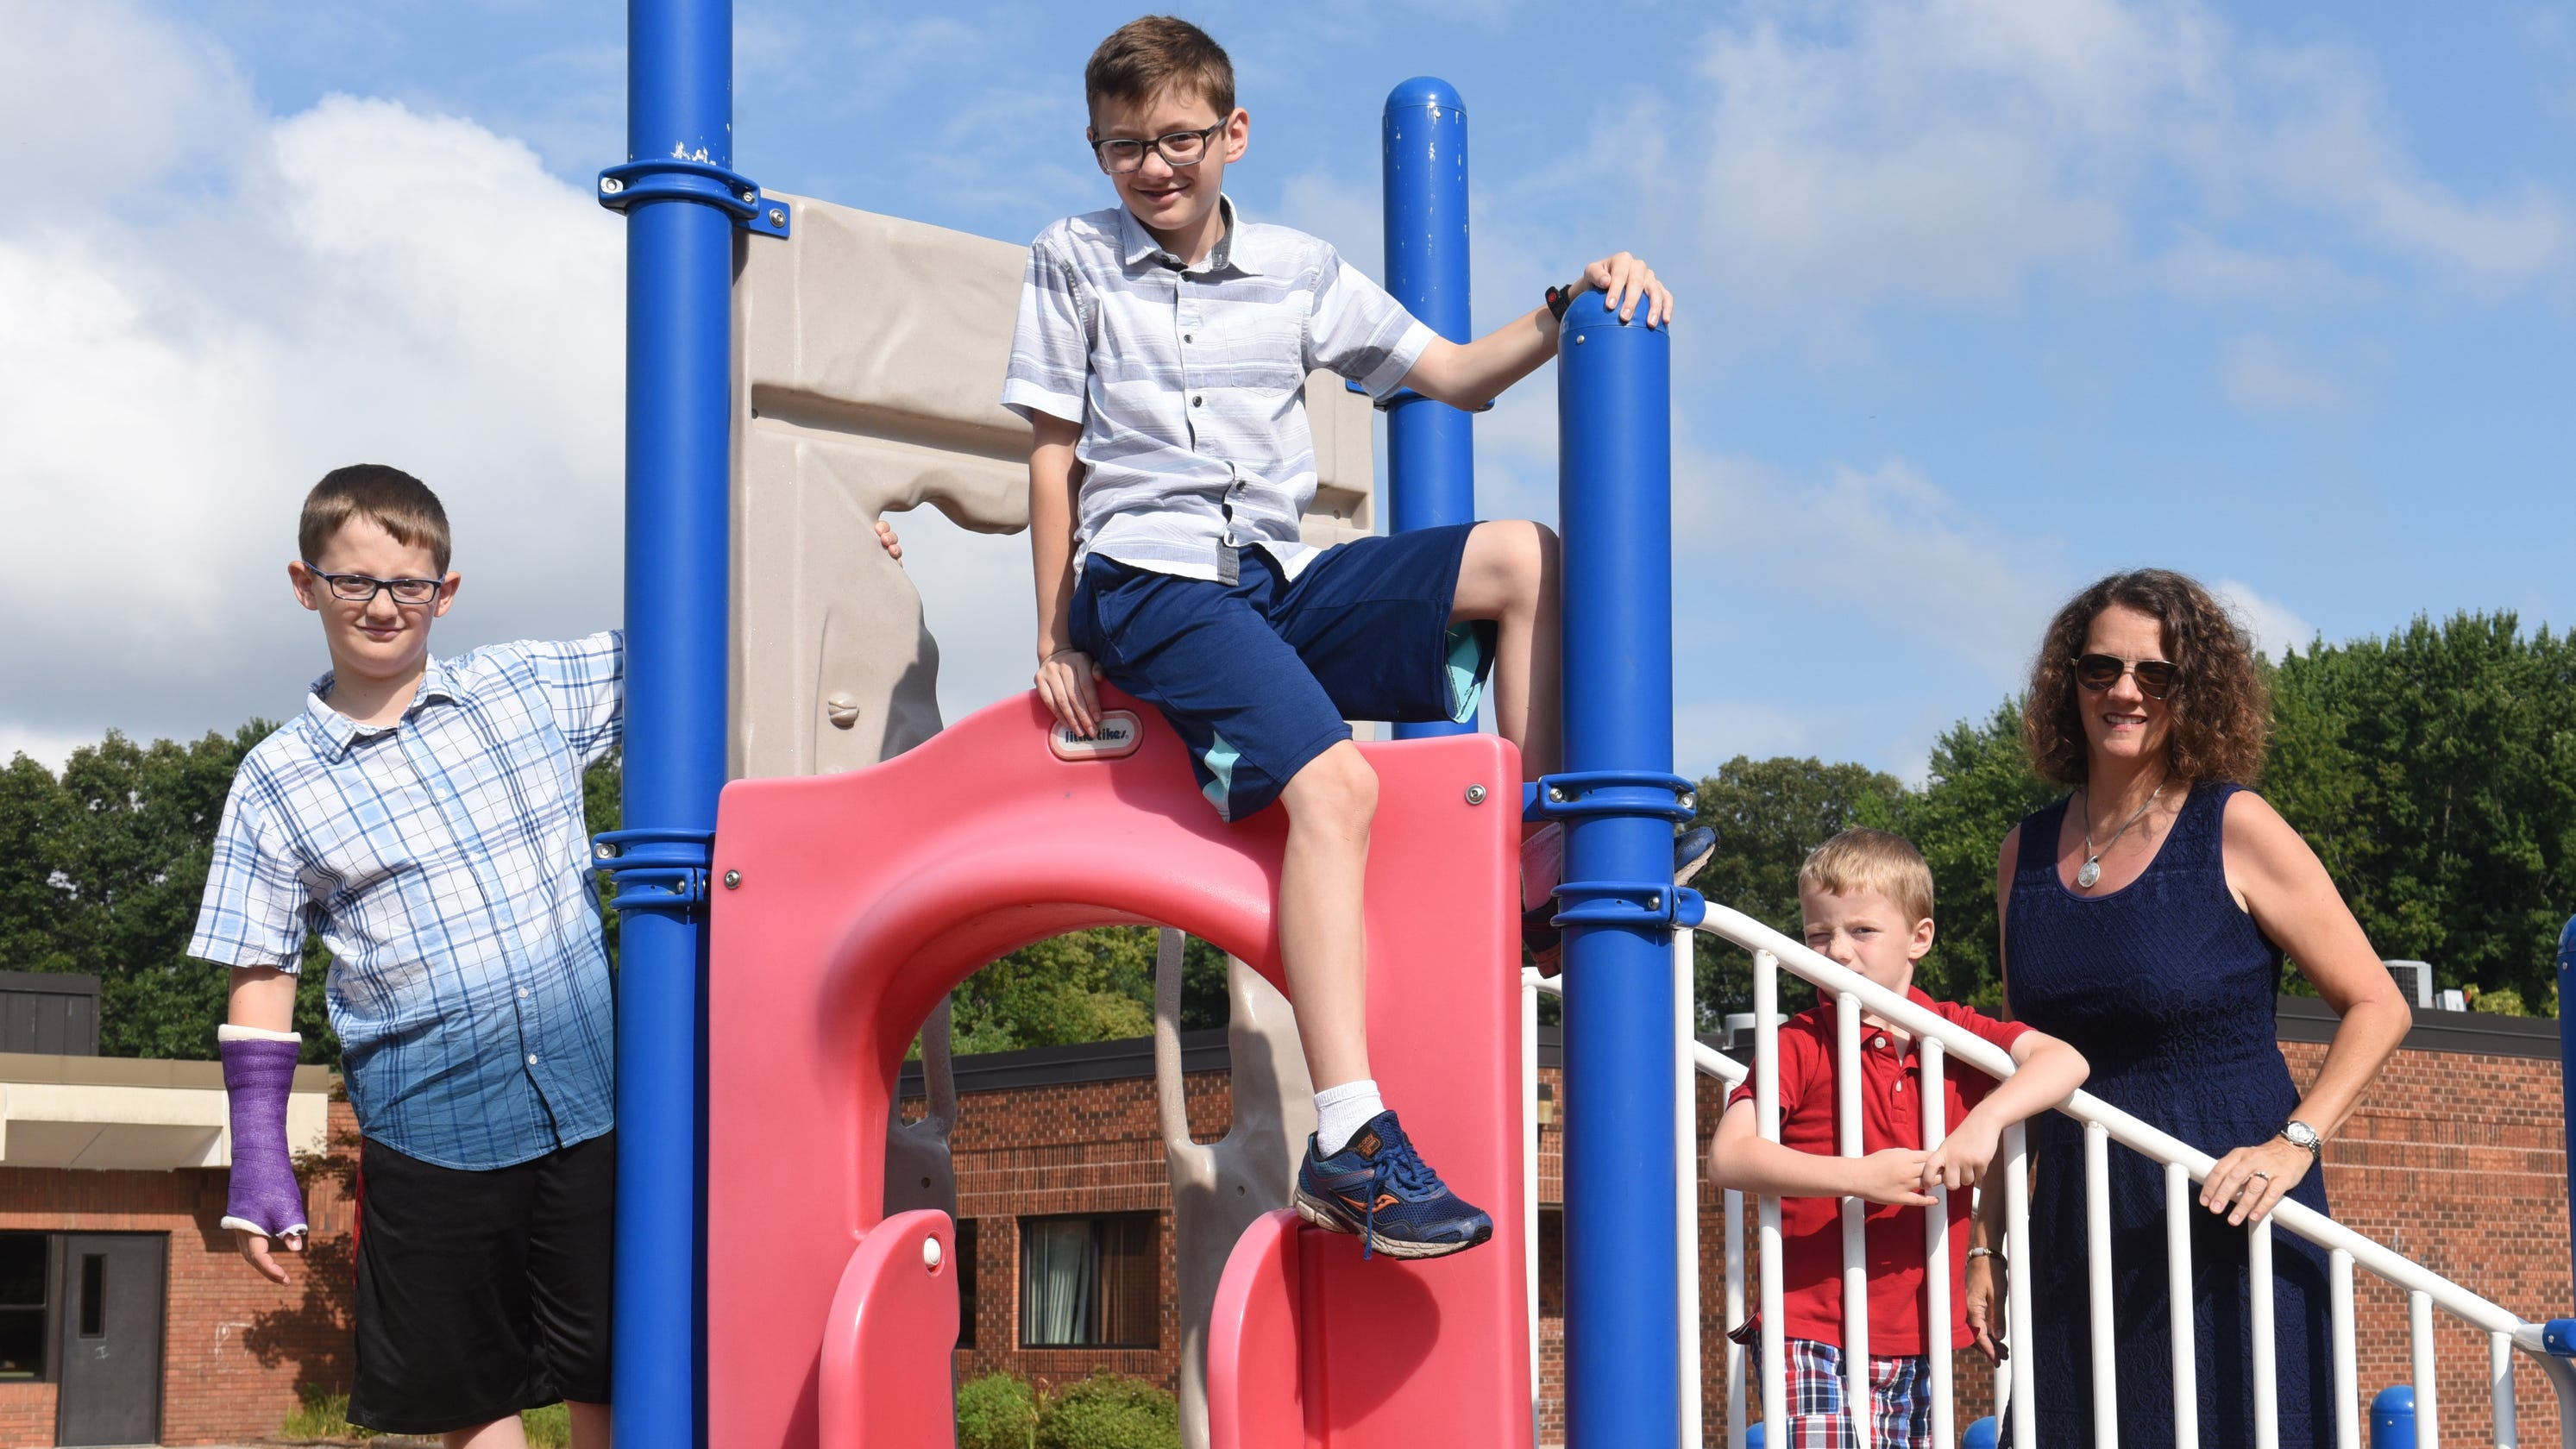 Does More Time On Playground Equal >> Schools Move To Later Start Times To Accommodate Teens Sleep Cycles